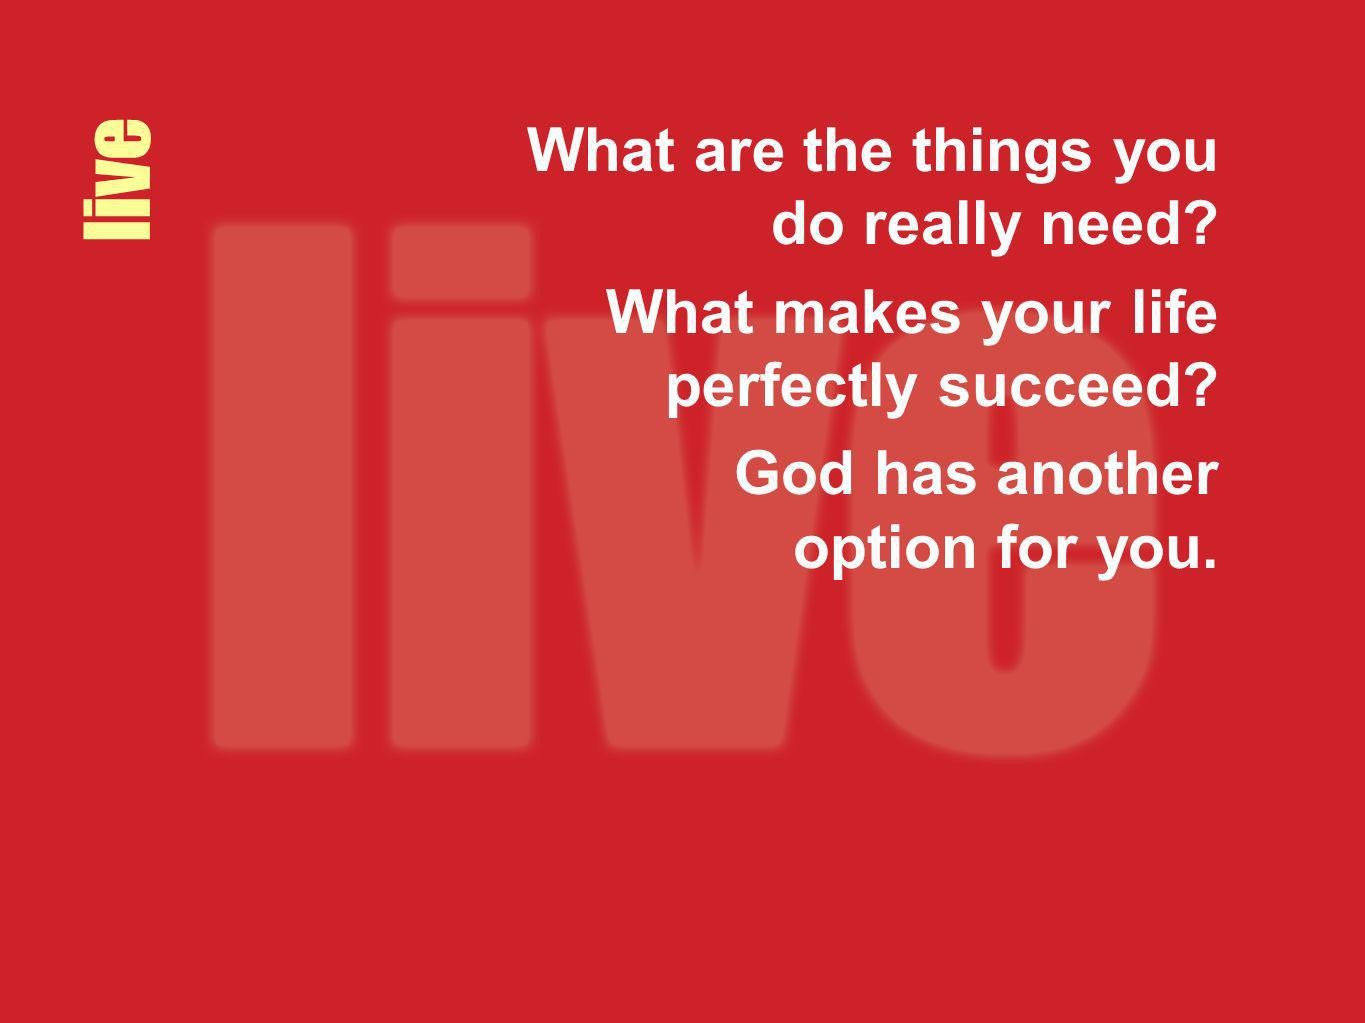 live What are the things you do really need? What makes your life perfectly succeed? God has another option for you.